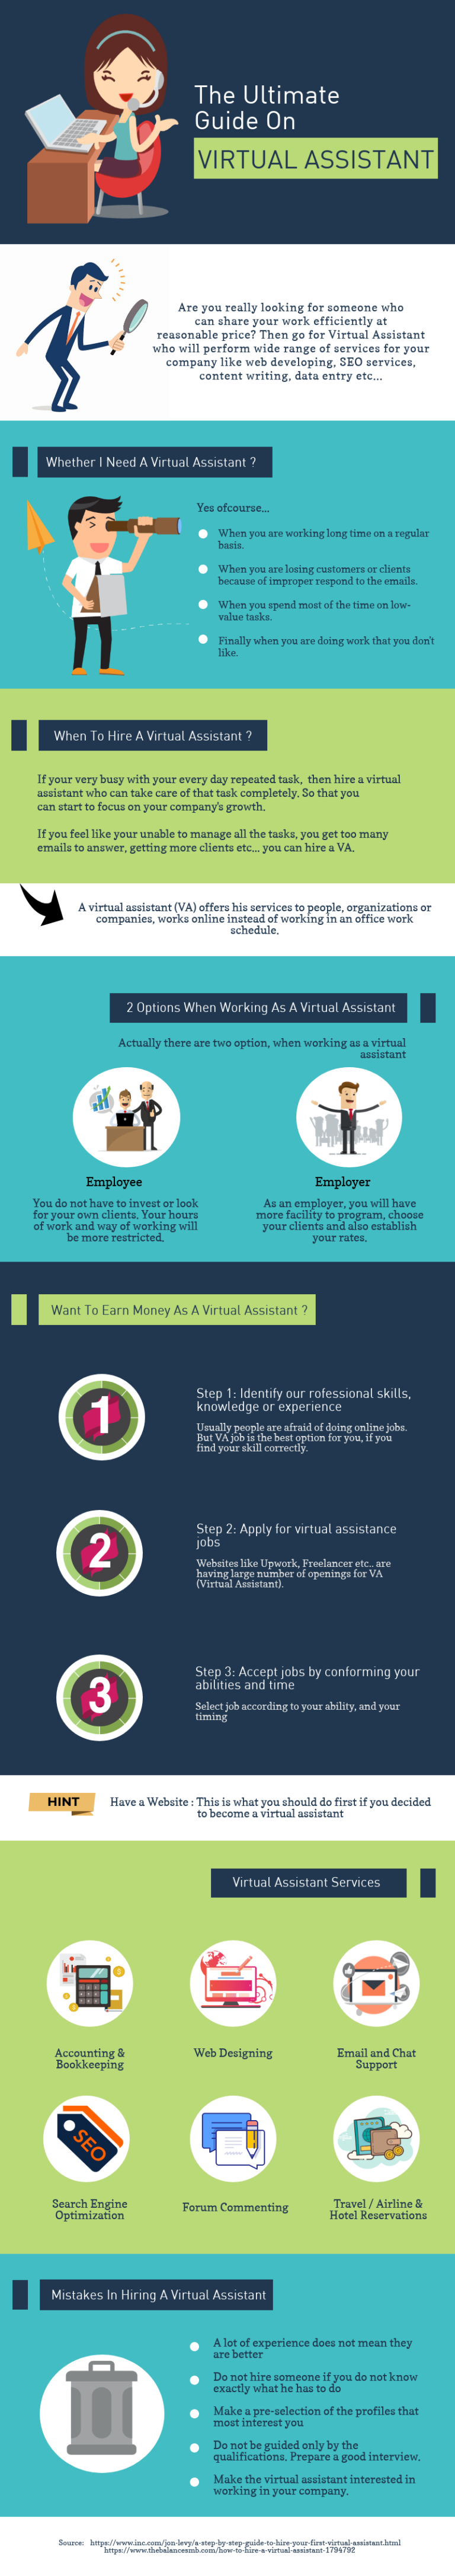 Virtual Assistant For Business in 2019